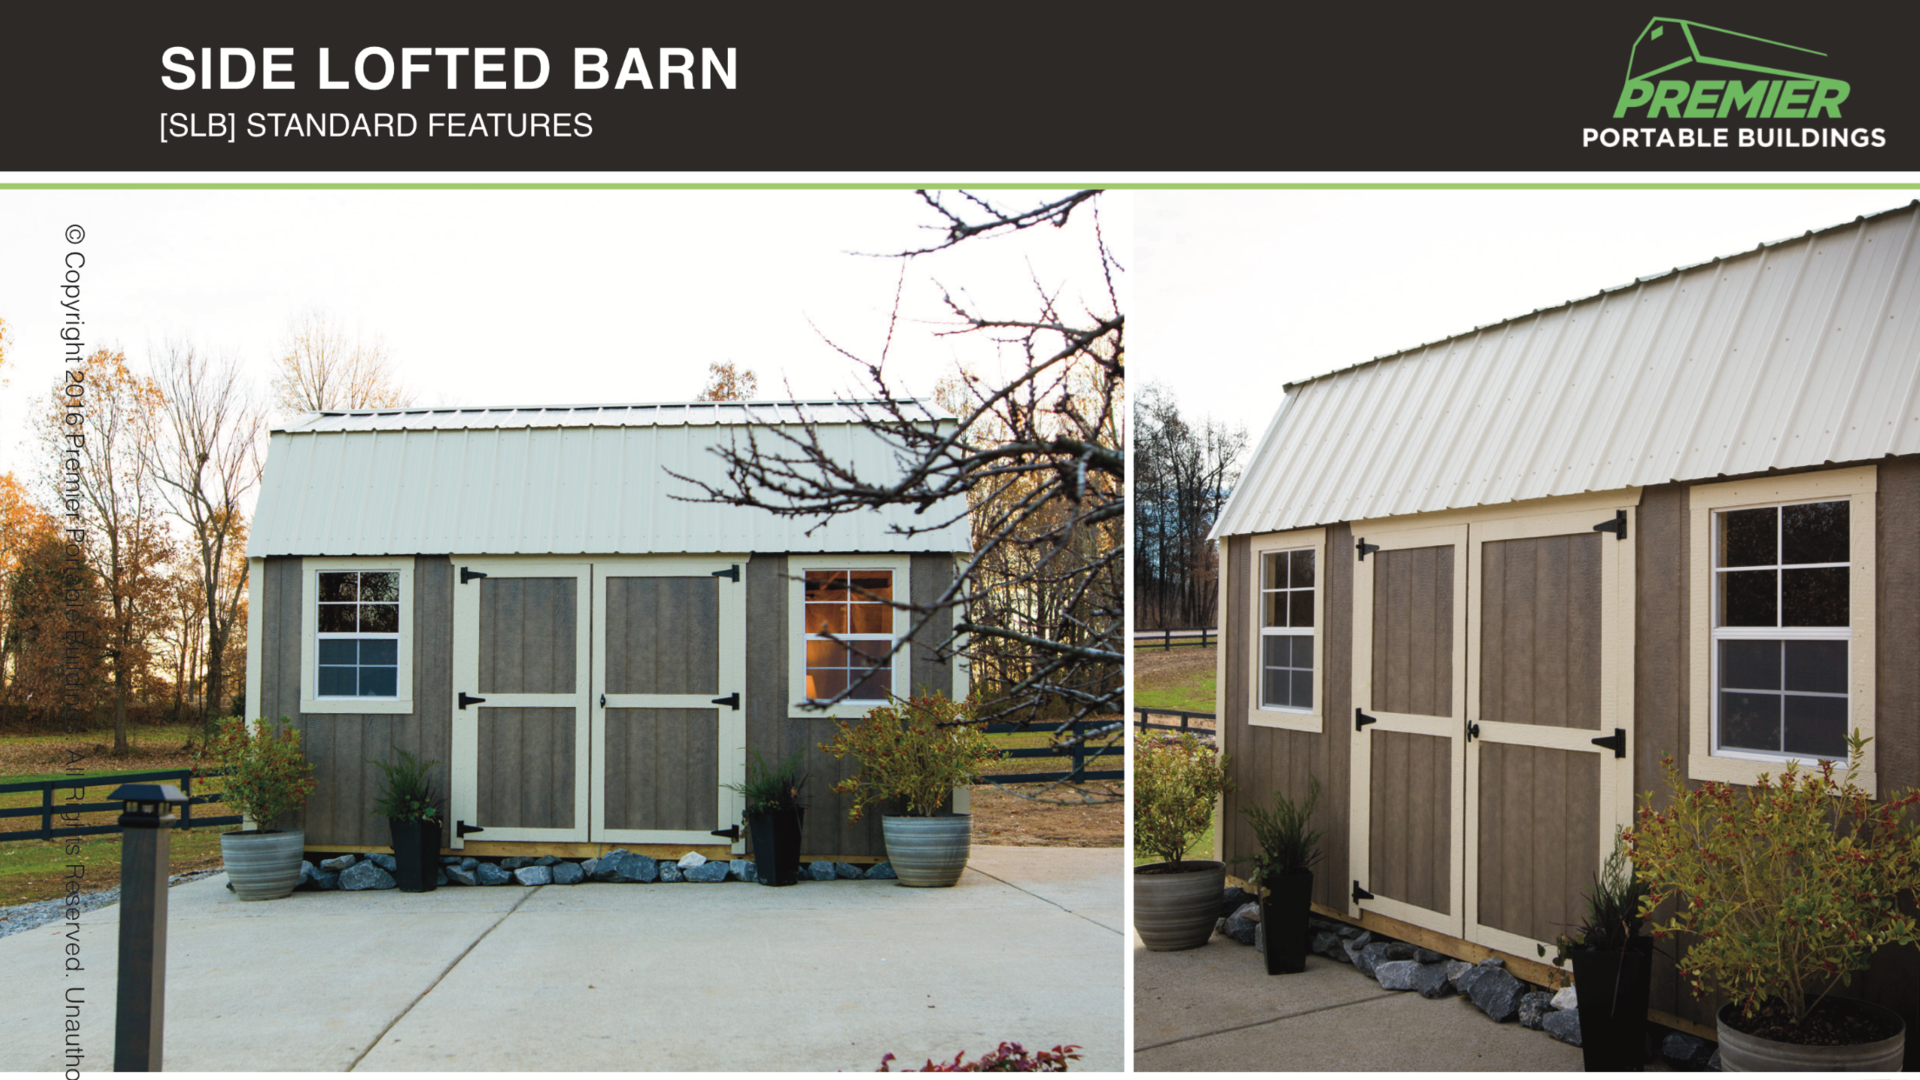 Let Us Help You Design And Create Your Own Barn Cabin Shed Pool House Studio Garage Workshop Or Other Outdoor Building